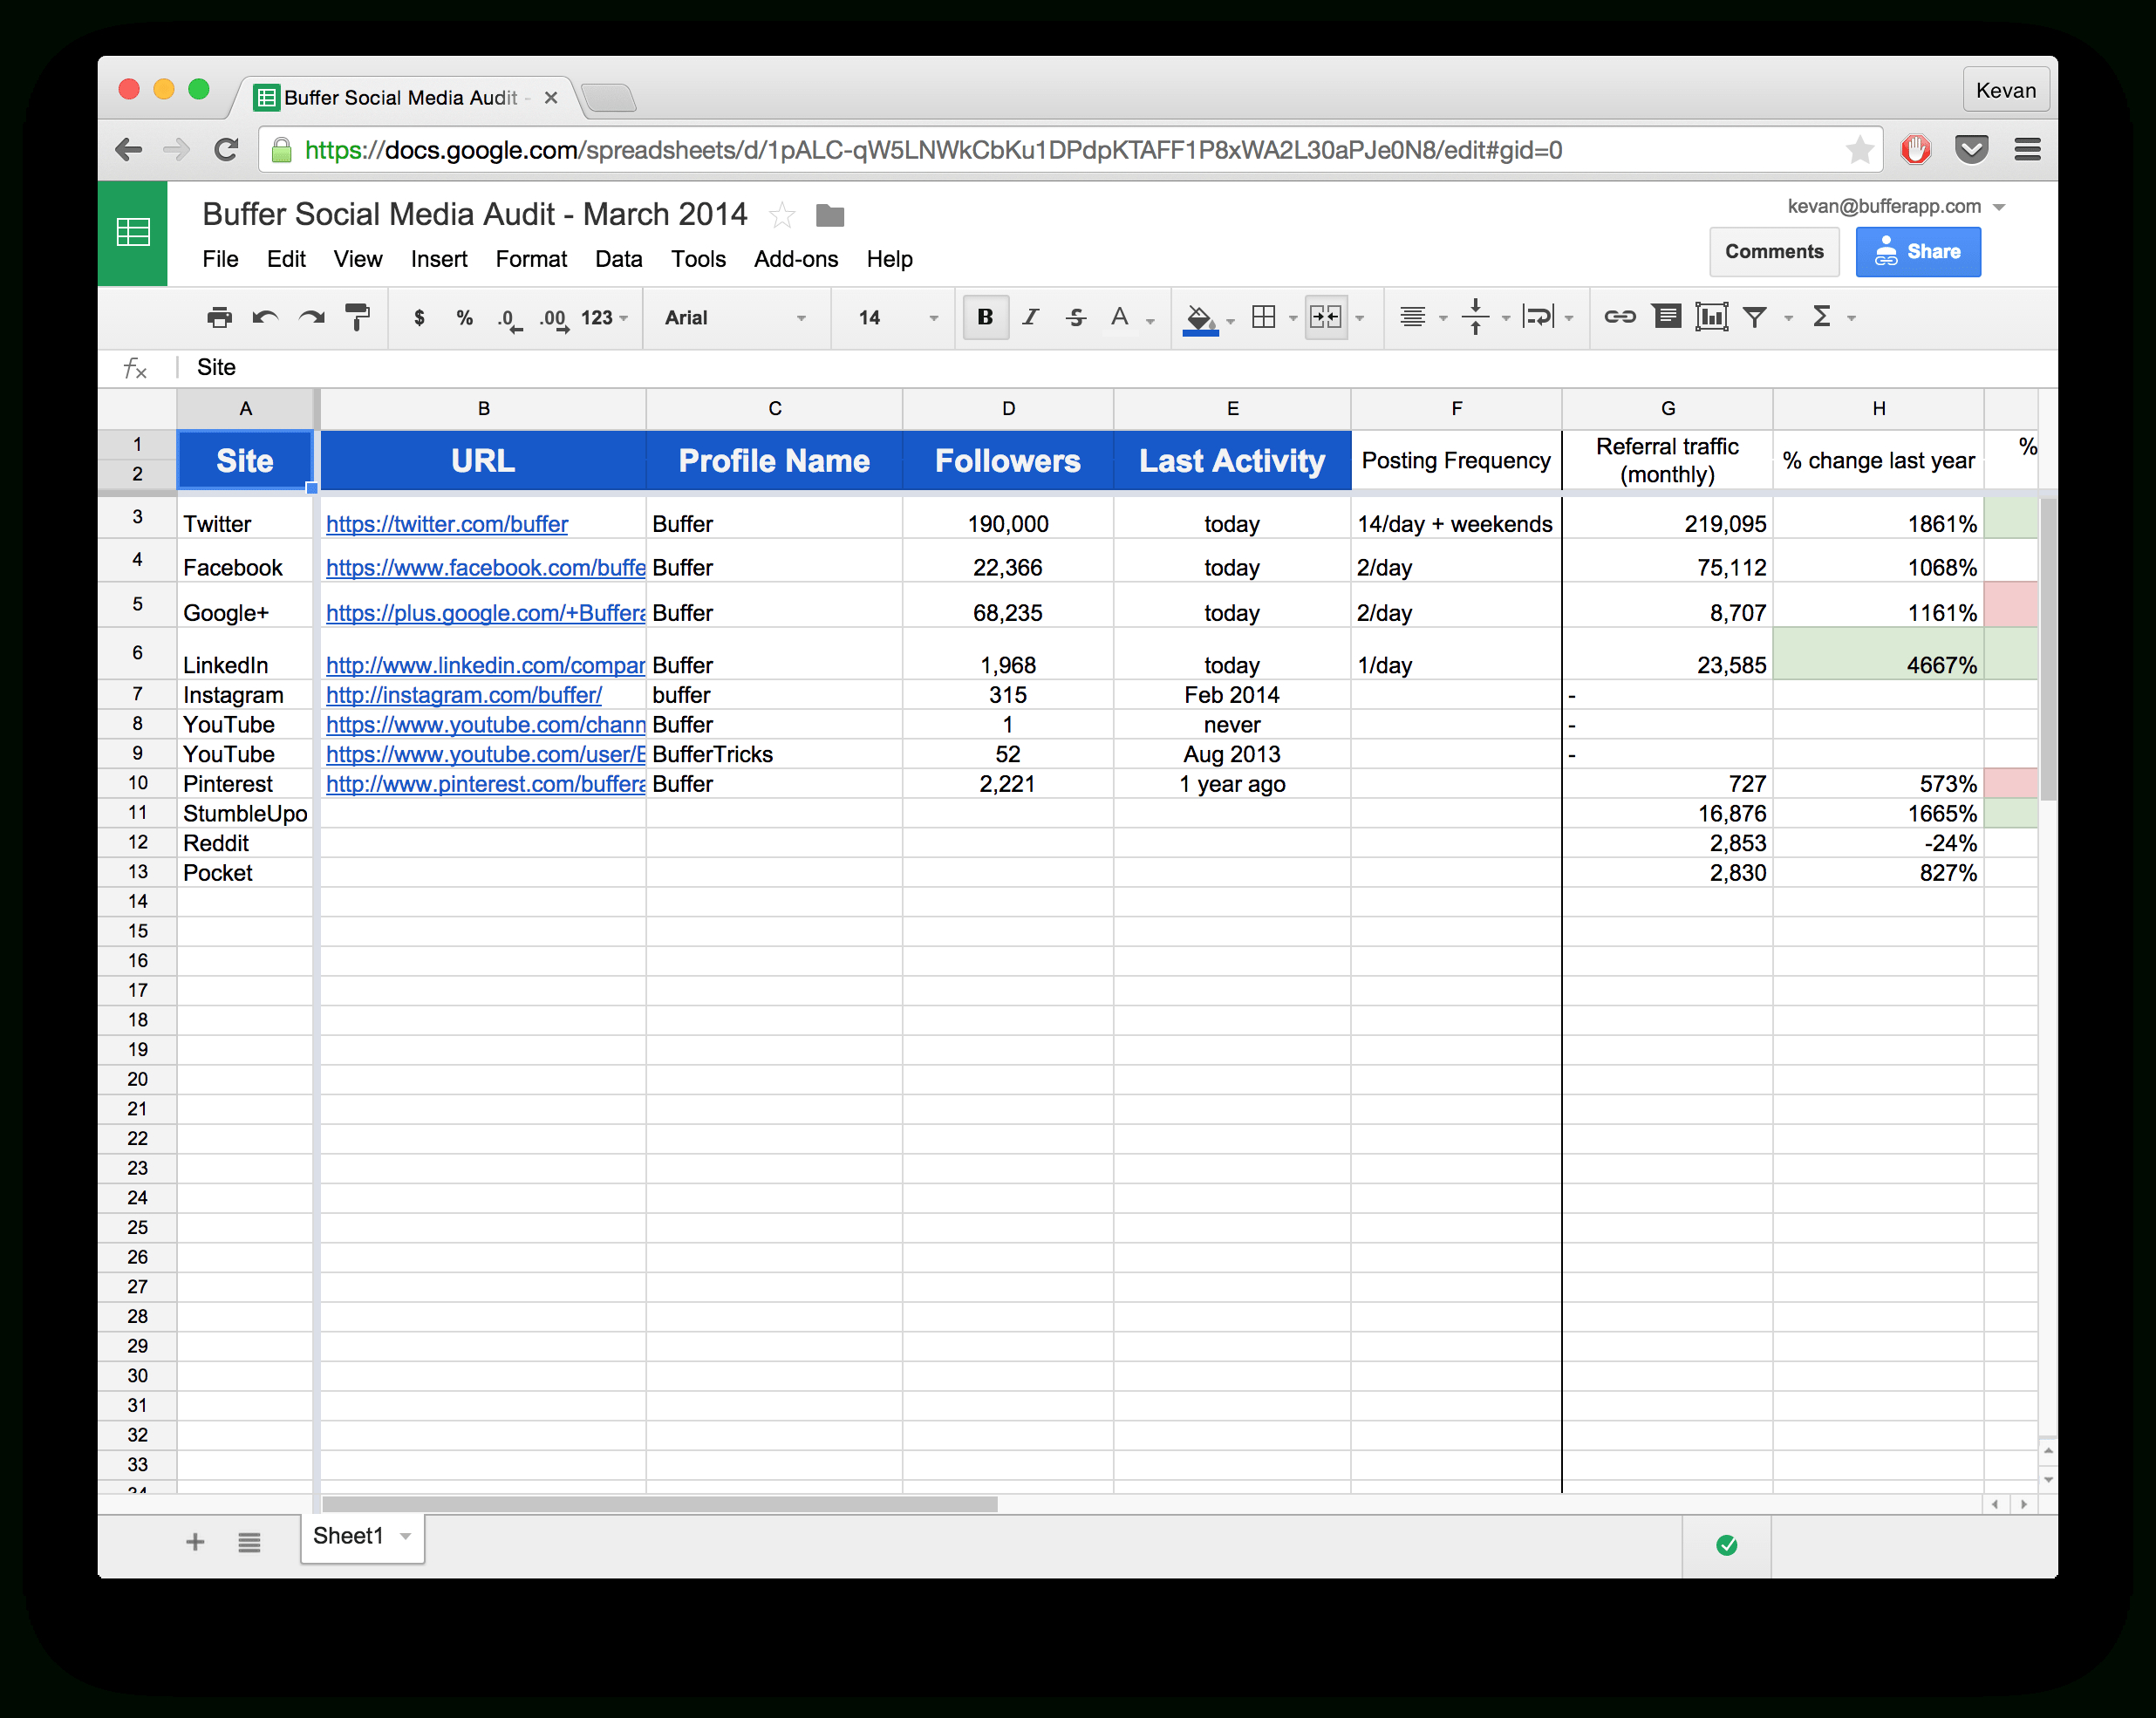 Proposal Comparison Spreadsheet Template Within 15 New Social Media Templates To Save You Even More Time